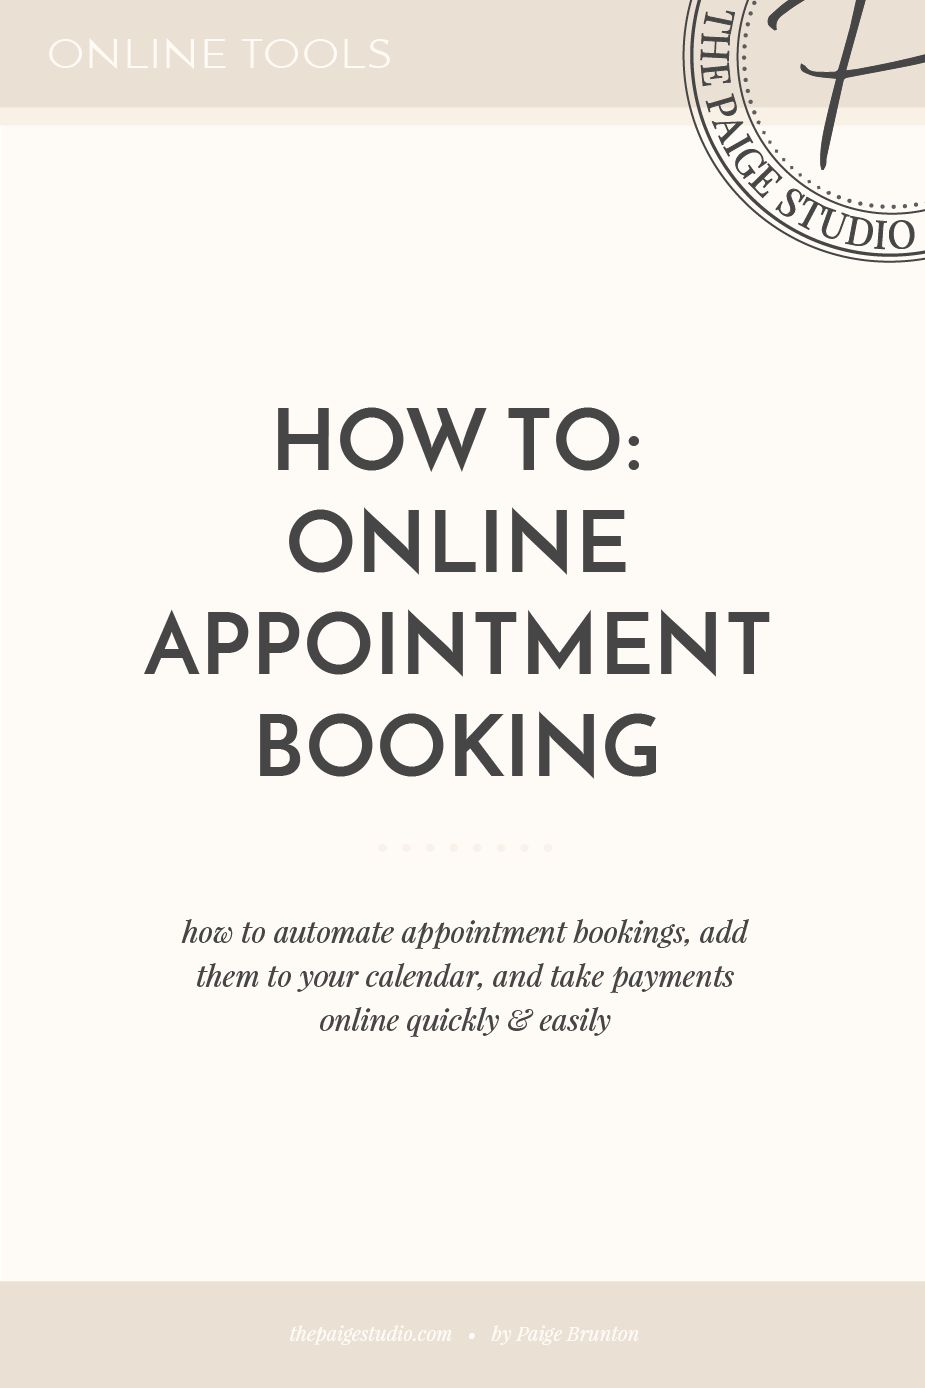 How to automate appointment bookings & take payments on a